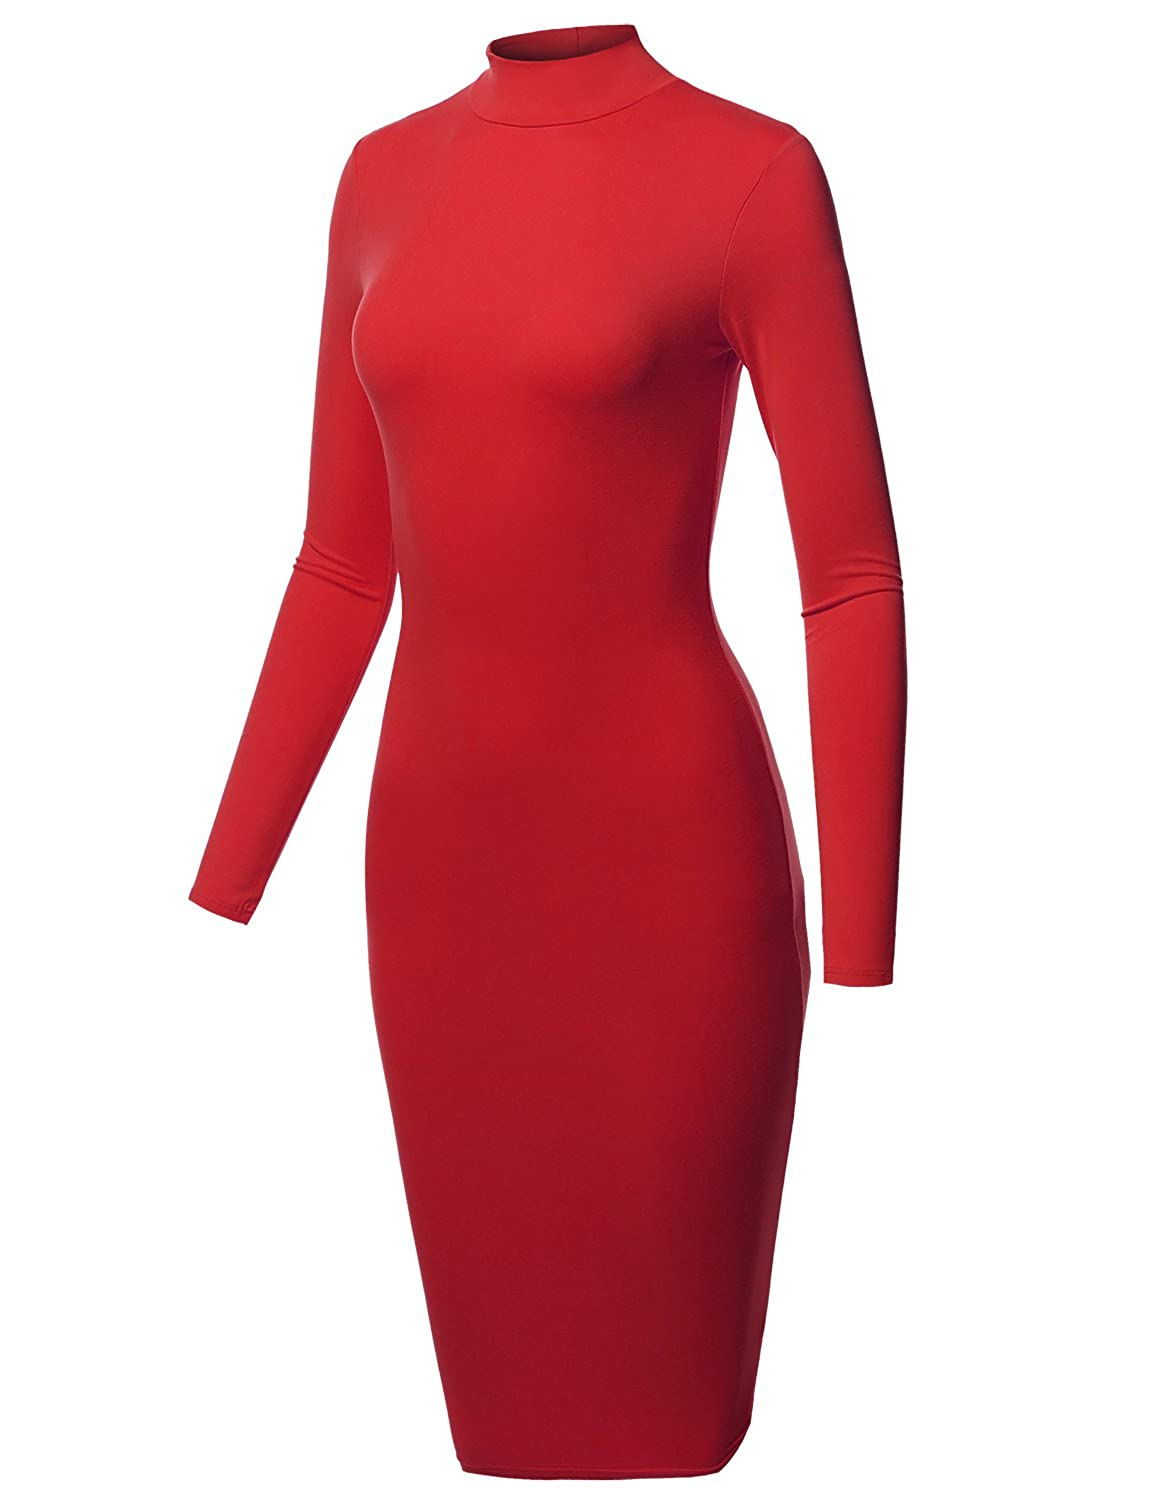 Aawdrm0003 Red Awesome21 Women's Sexy Long Sleeves High Neck Mini BodyCon Dress  Made in USA